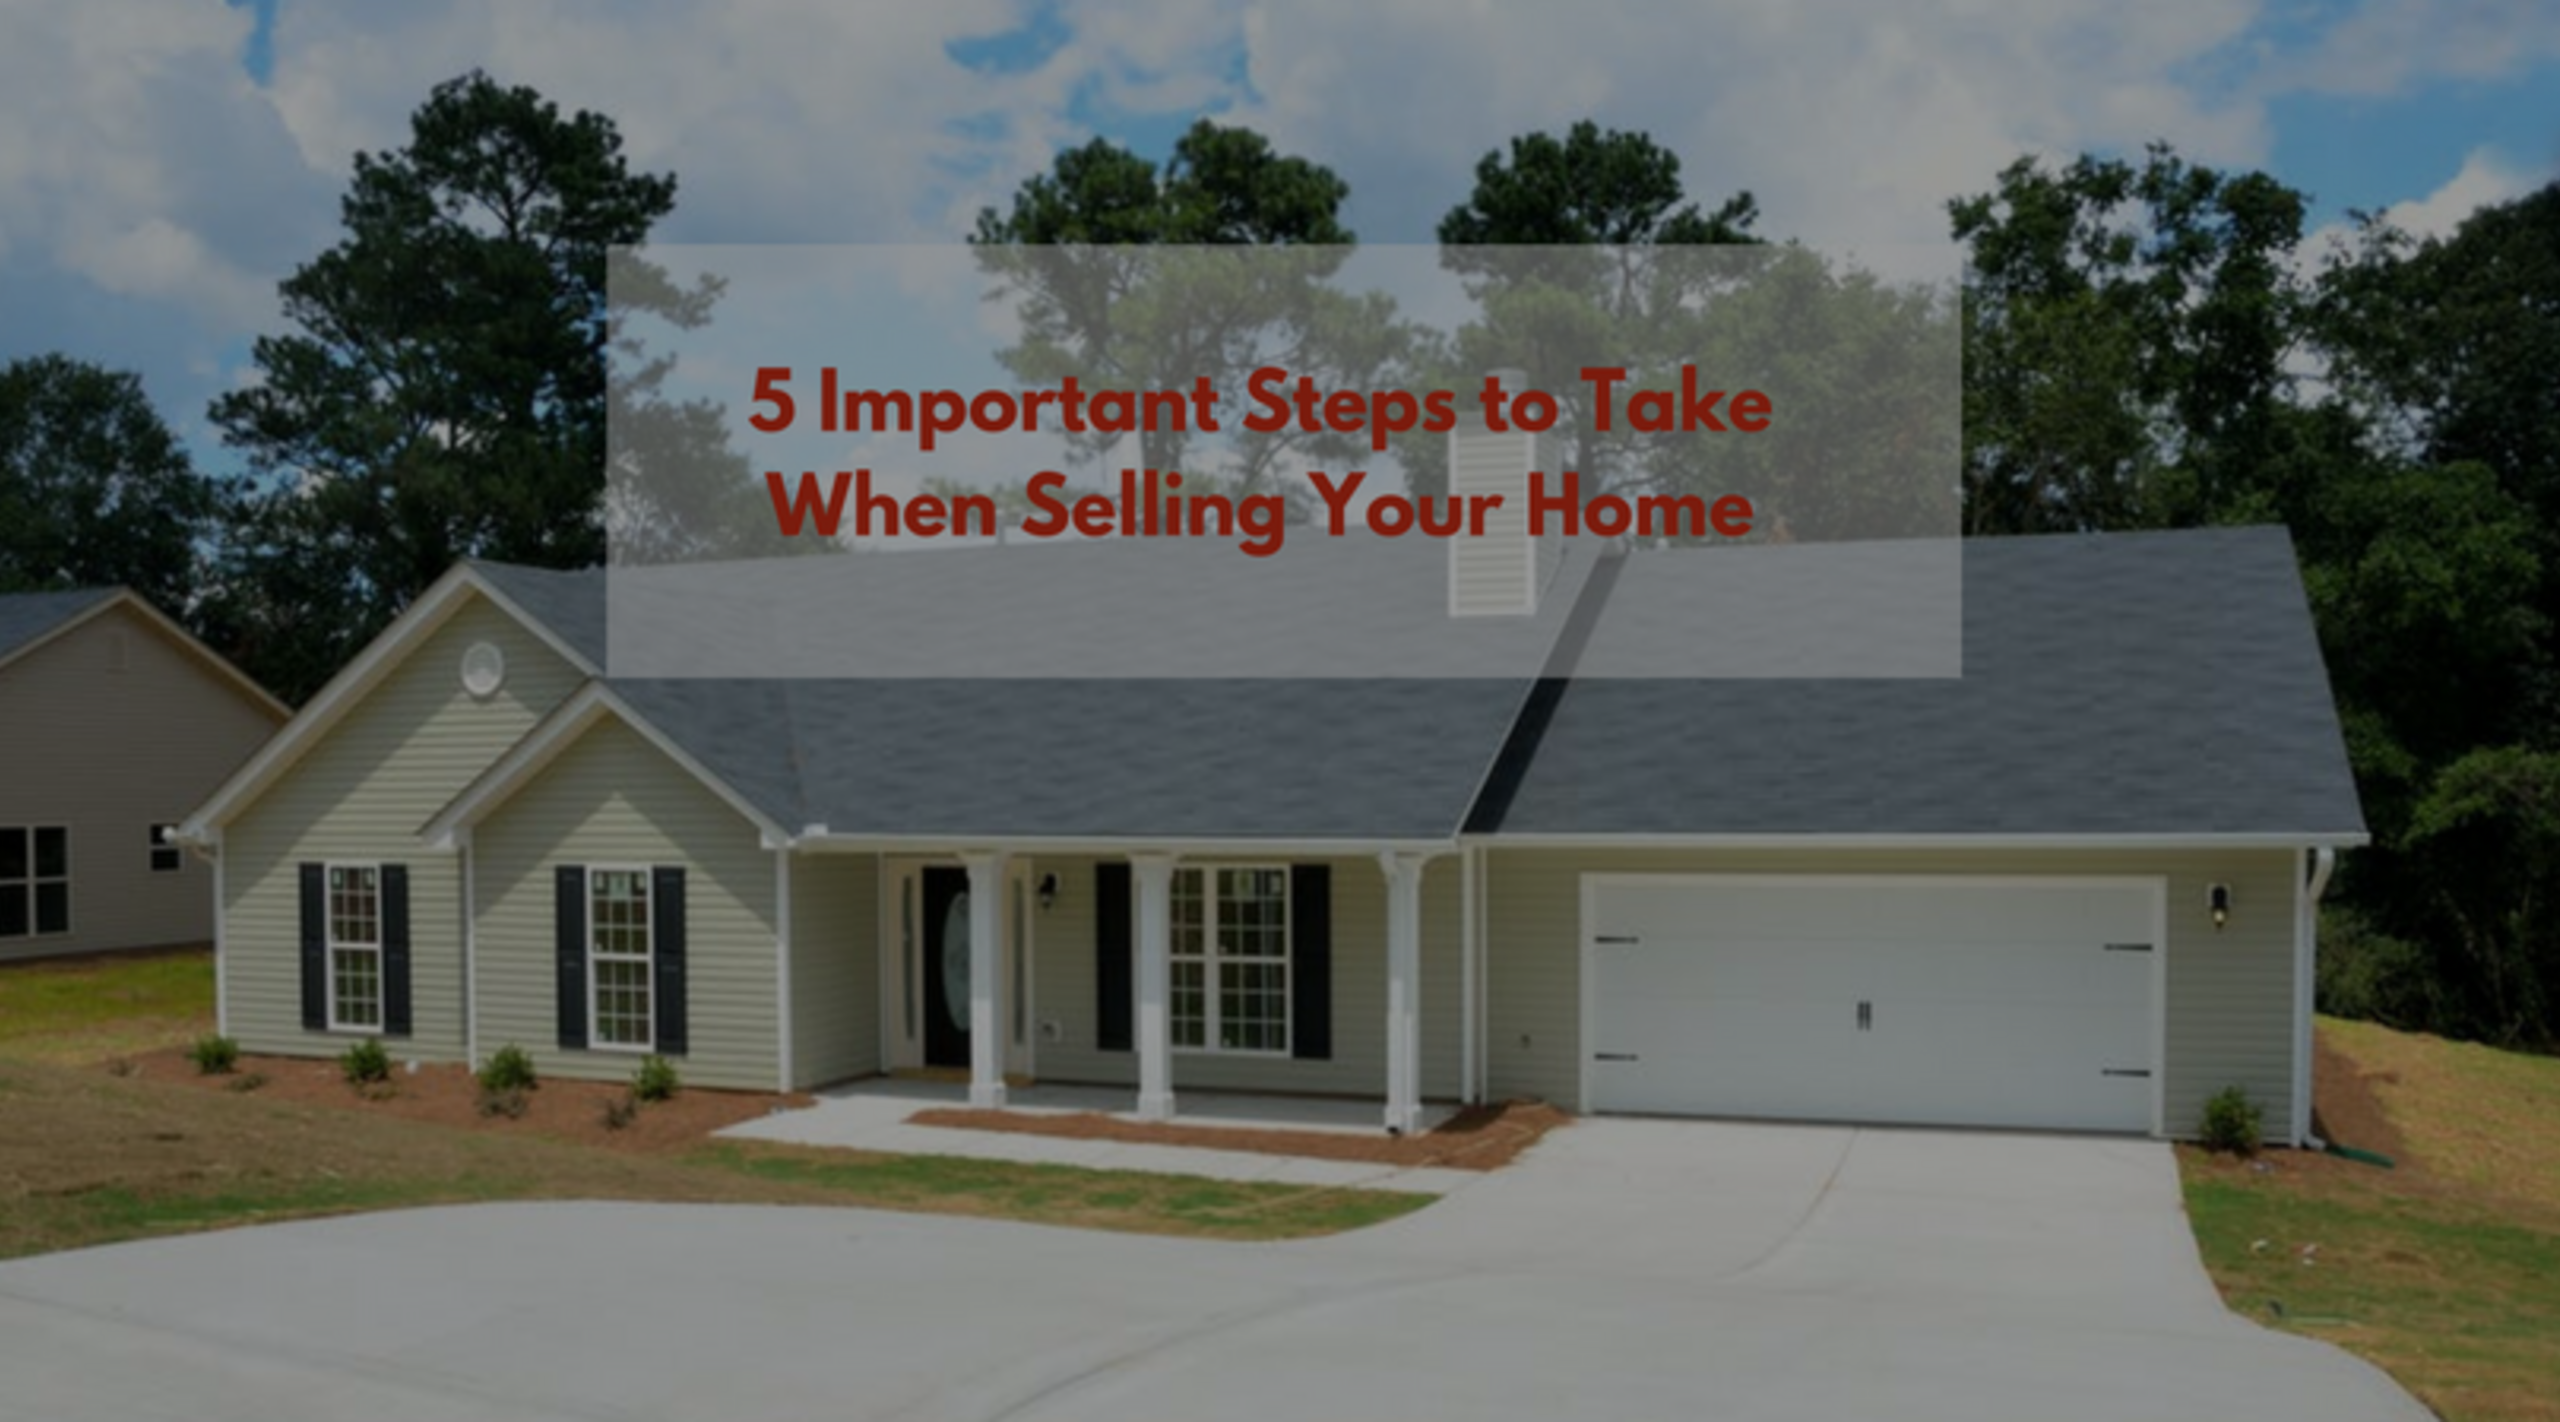 5 Important Steps to Take When Selling Your Home